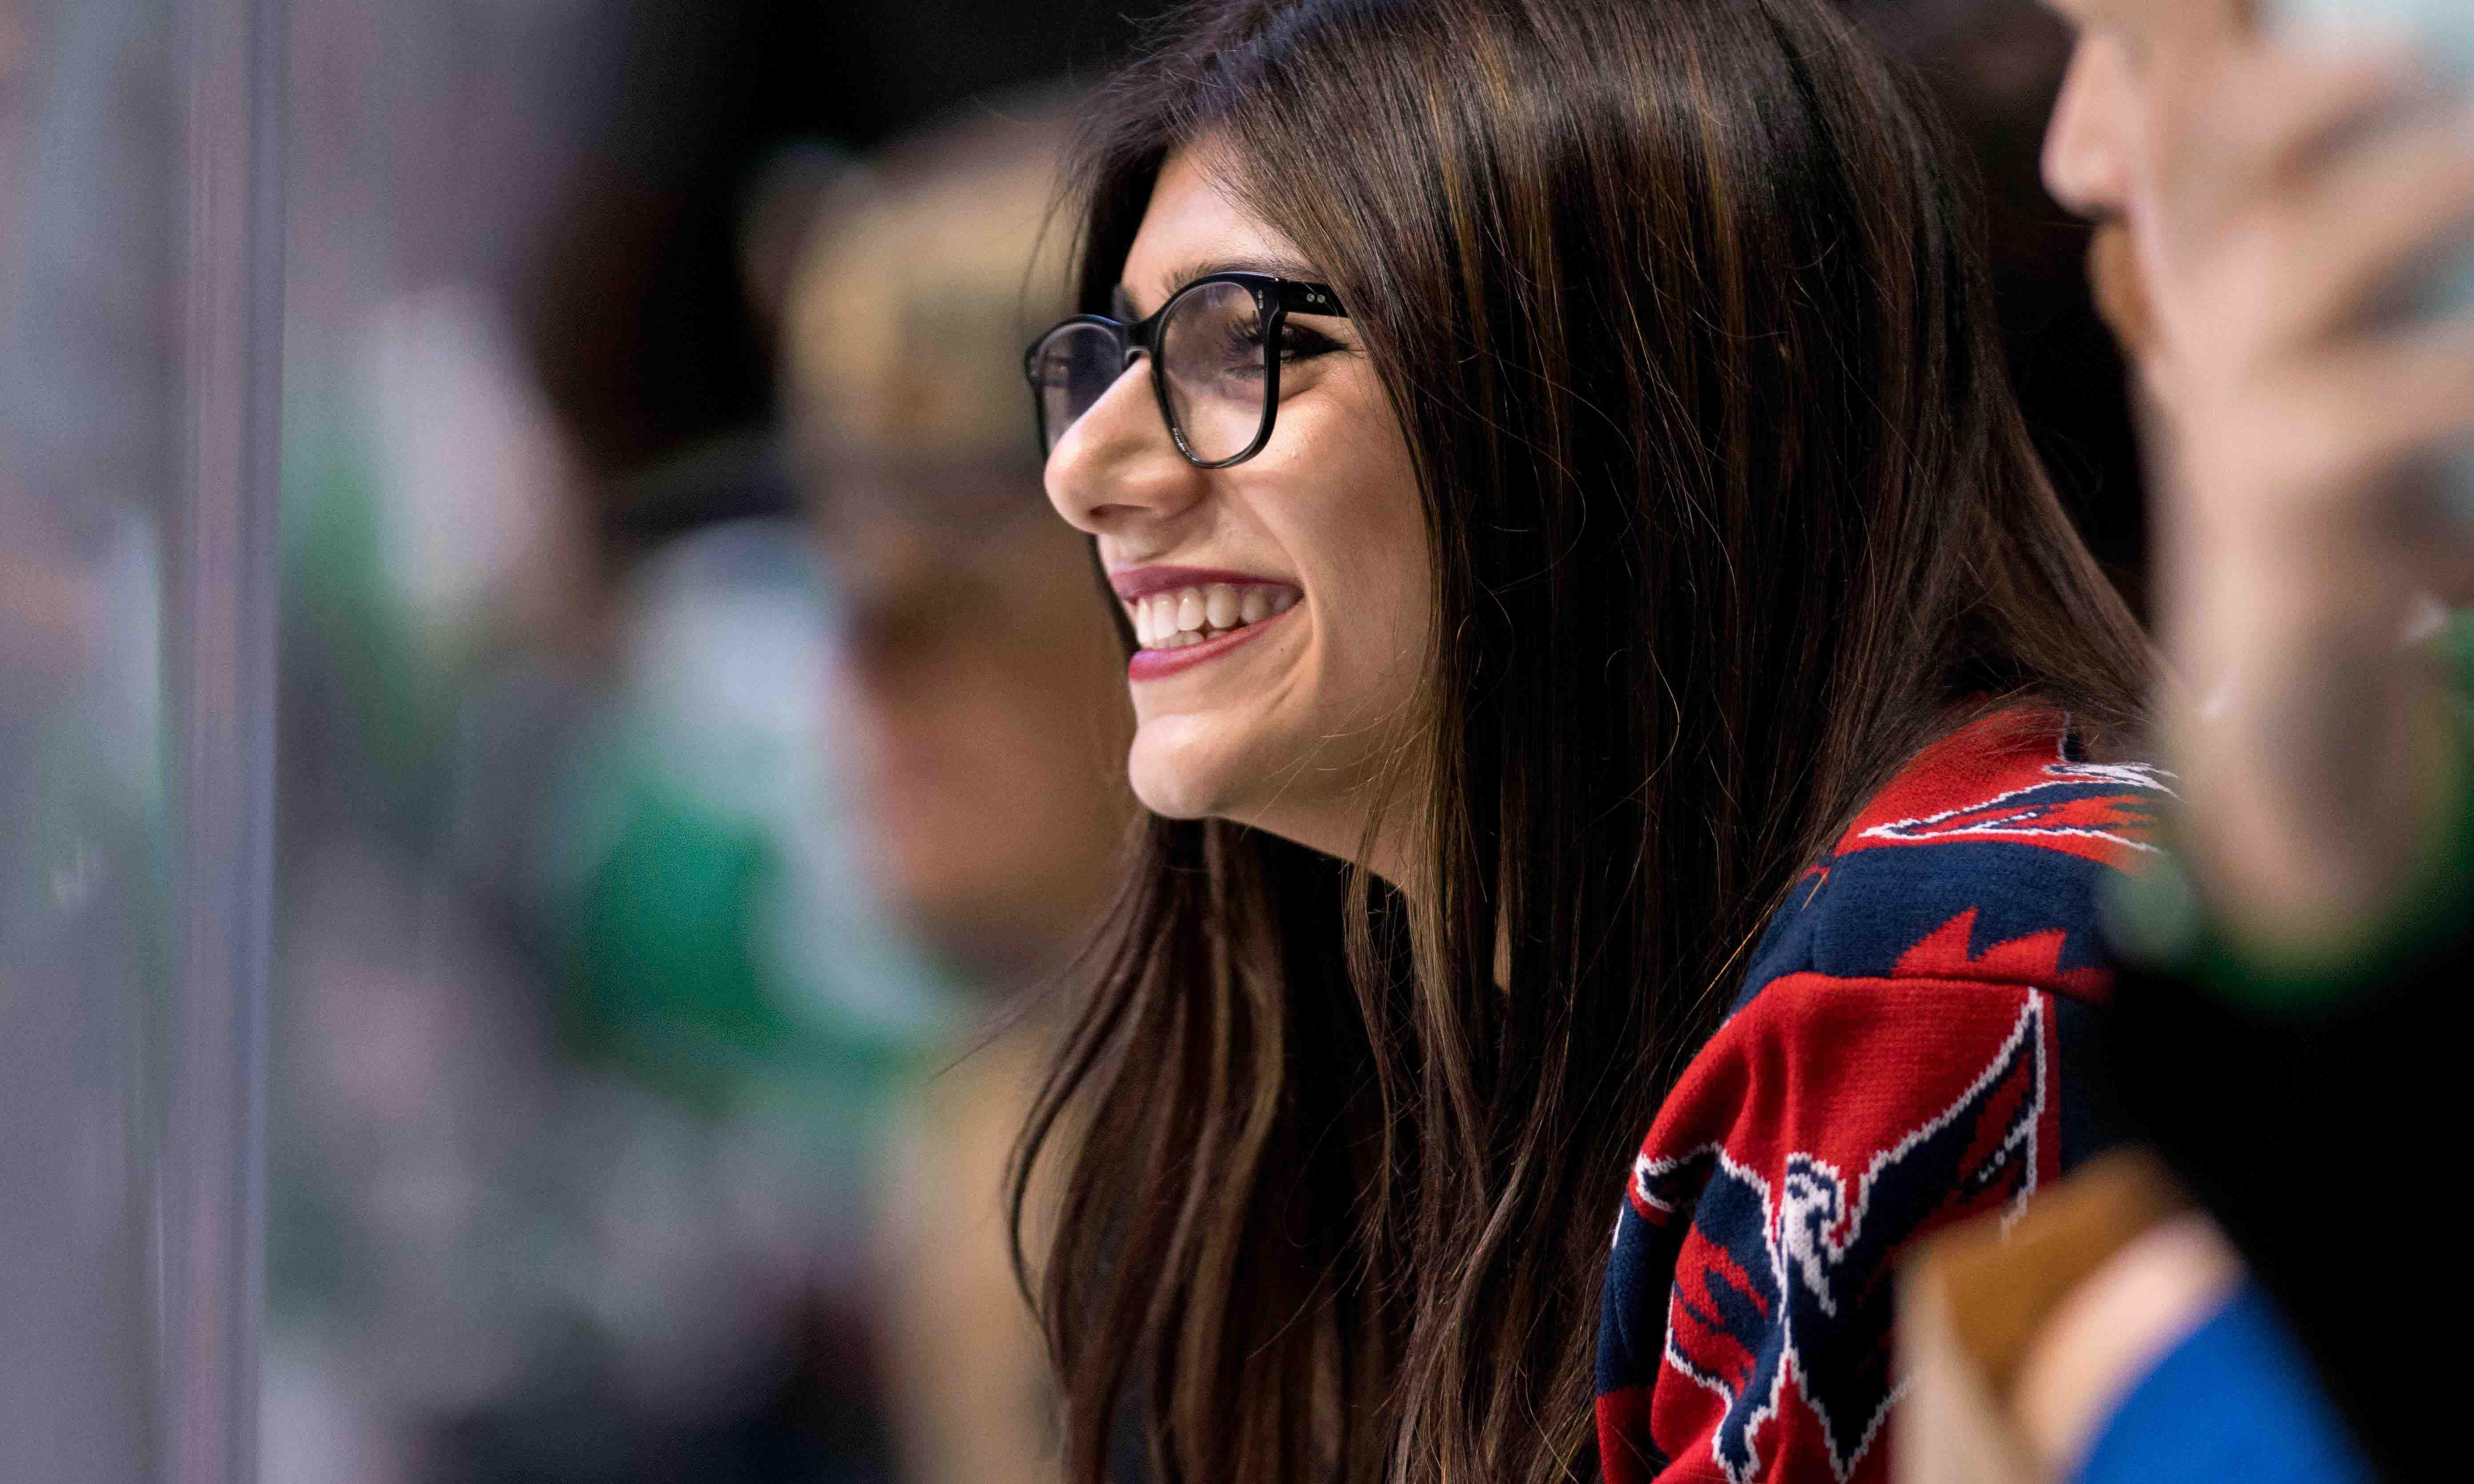 Ex-porn star Mia Khalifa wants to move on with her life. Why won't we let her?